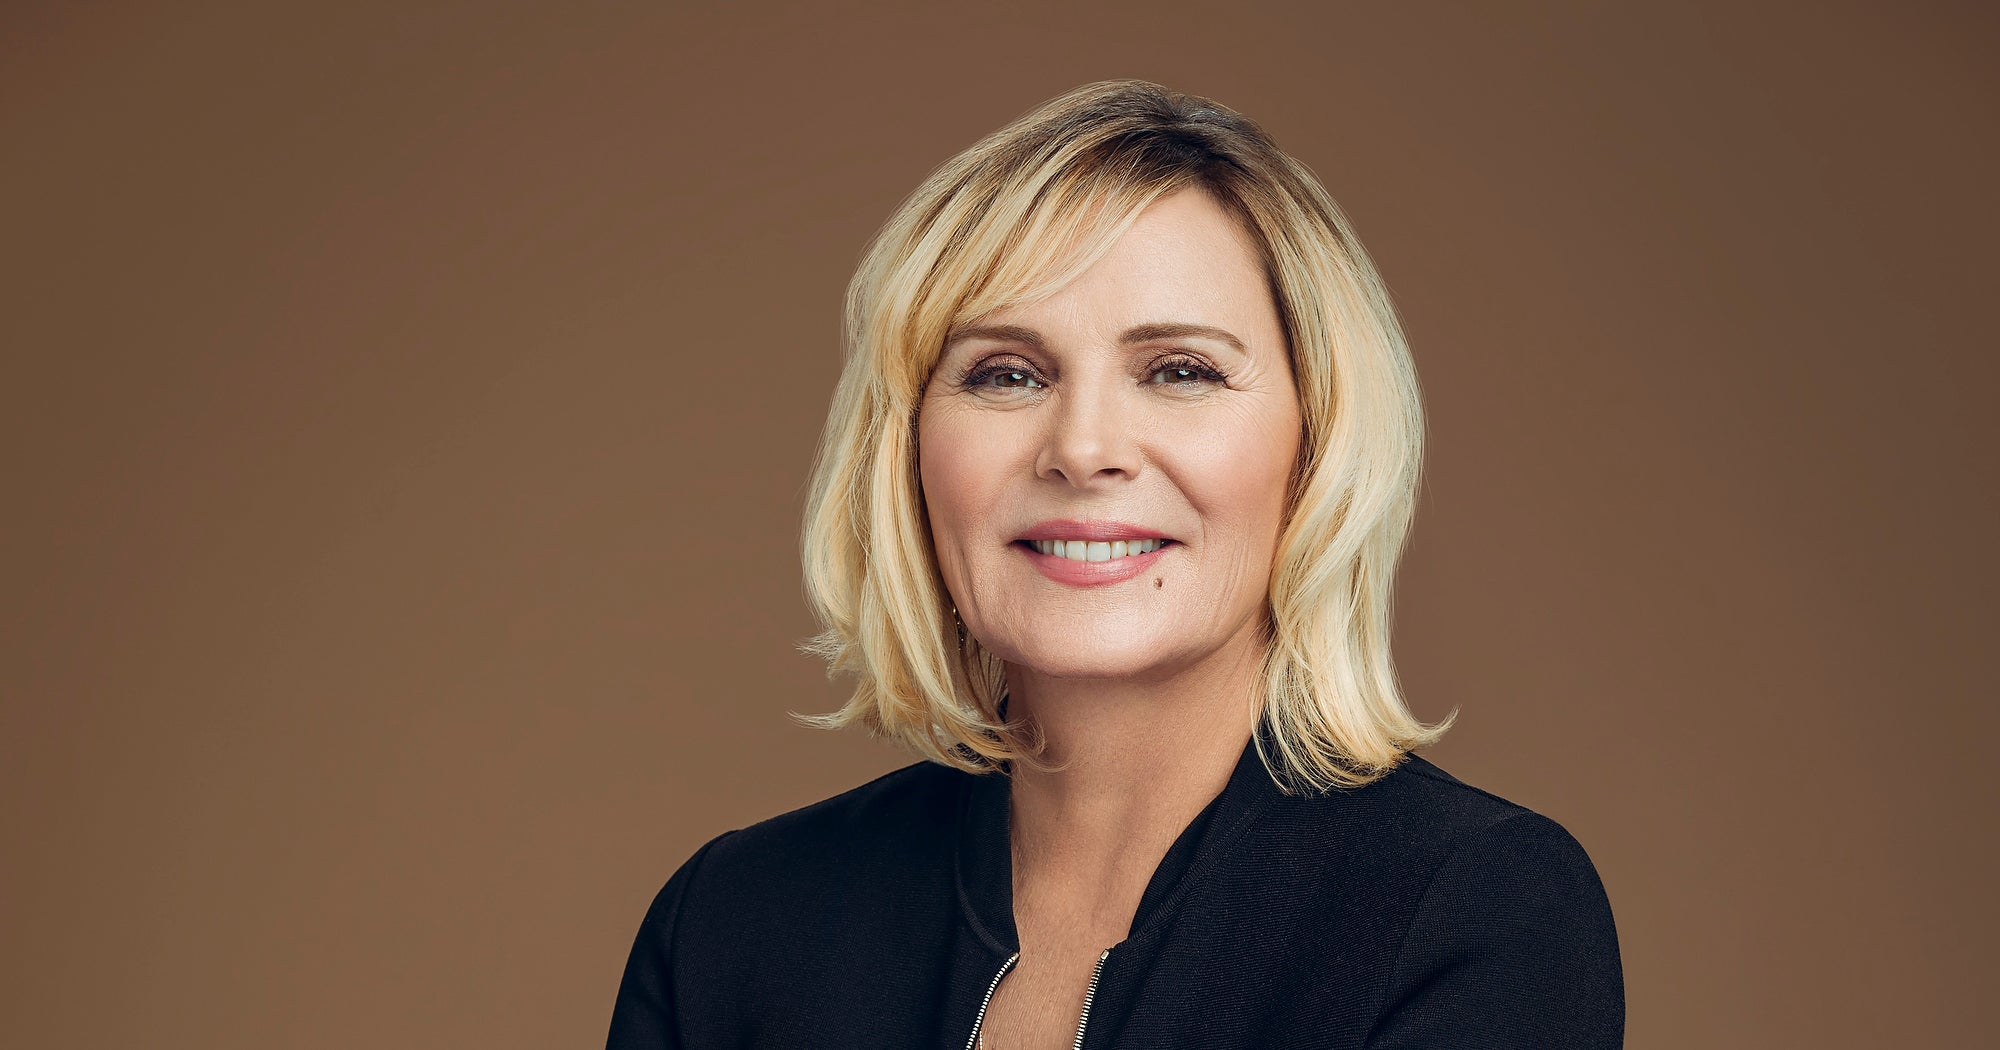 Space & The City: Kim Cattrall Is Going To The Moon